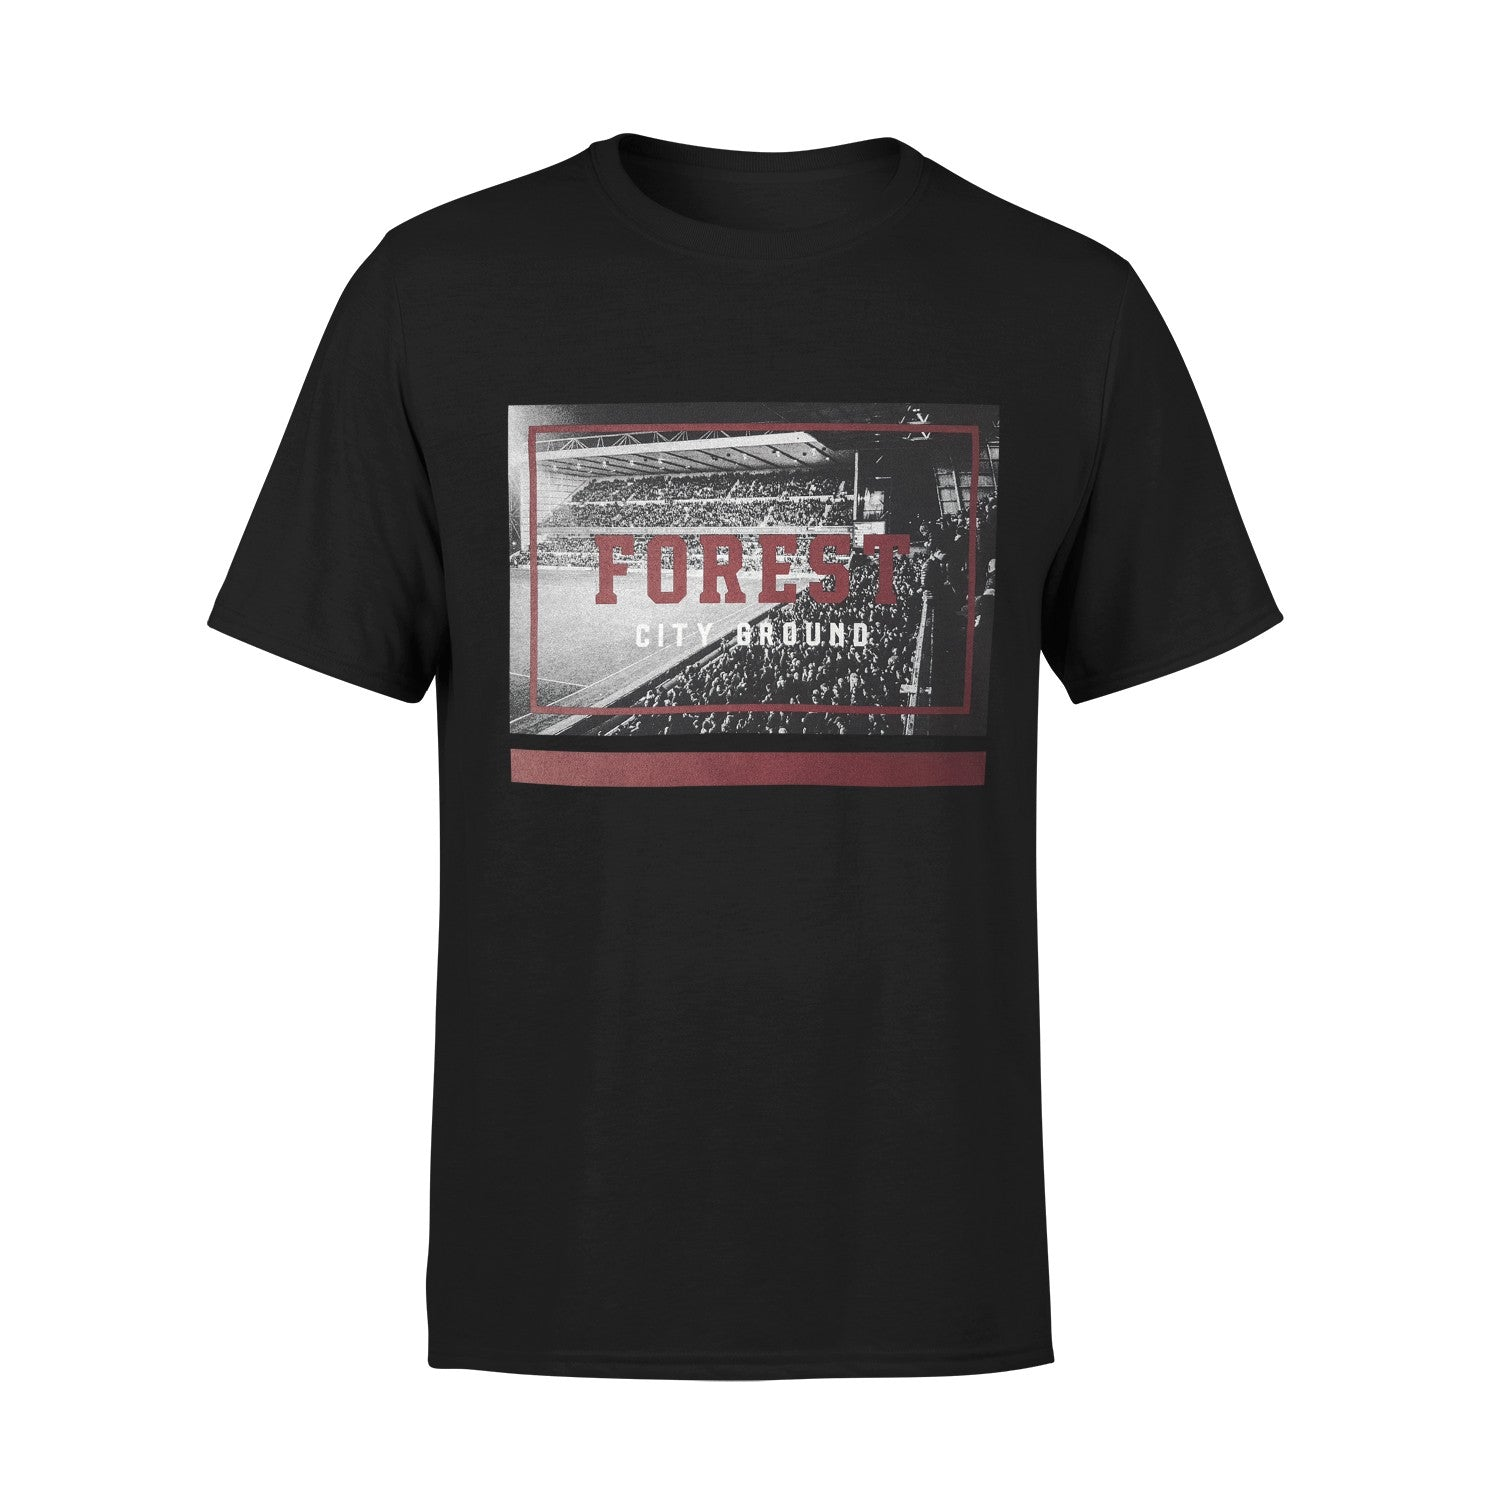 NFFC Junior Black City Ground T-Shirt - Nottingham Forest